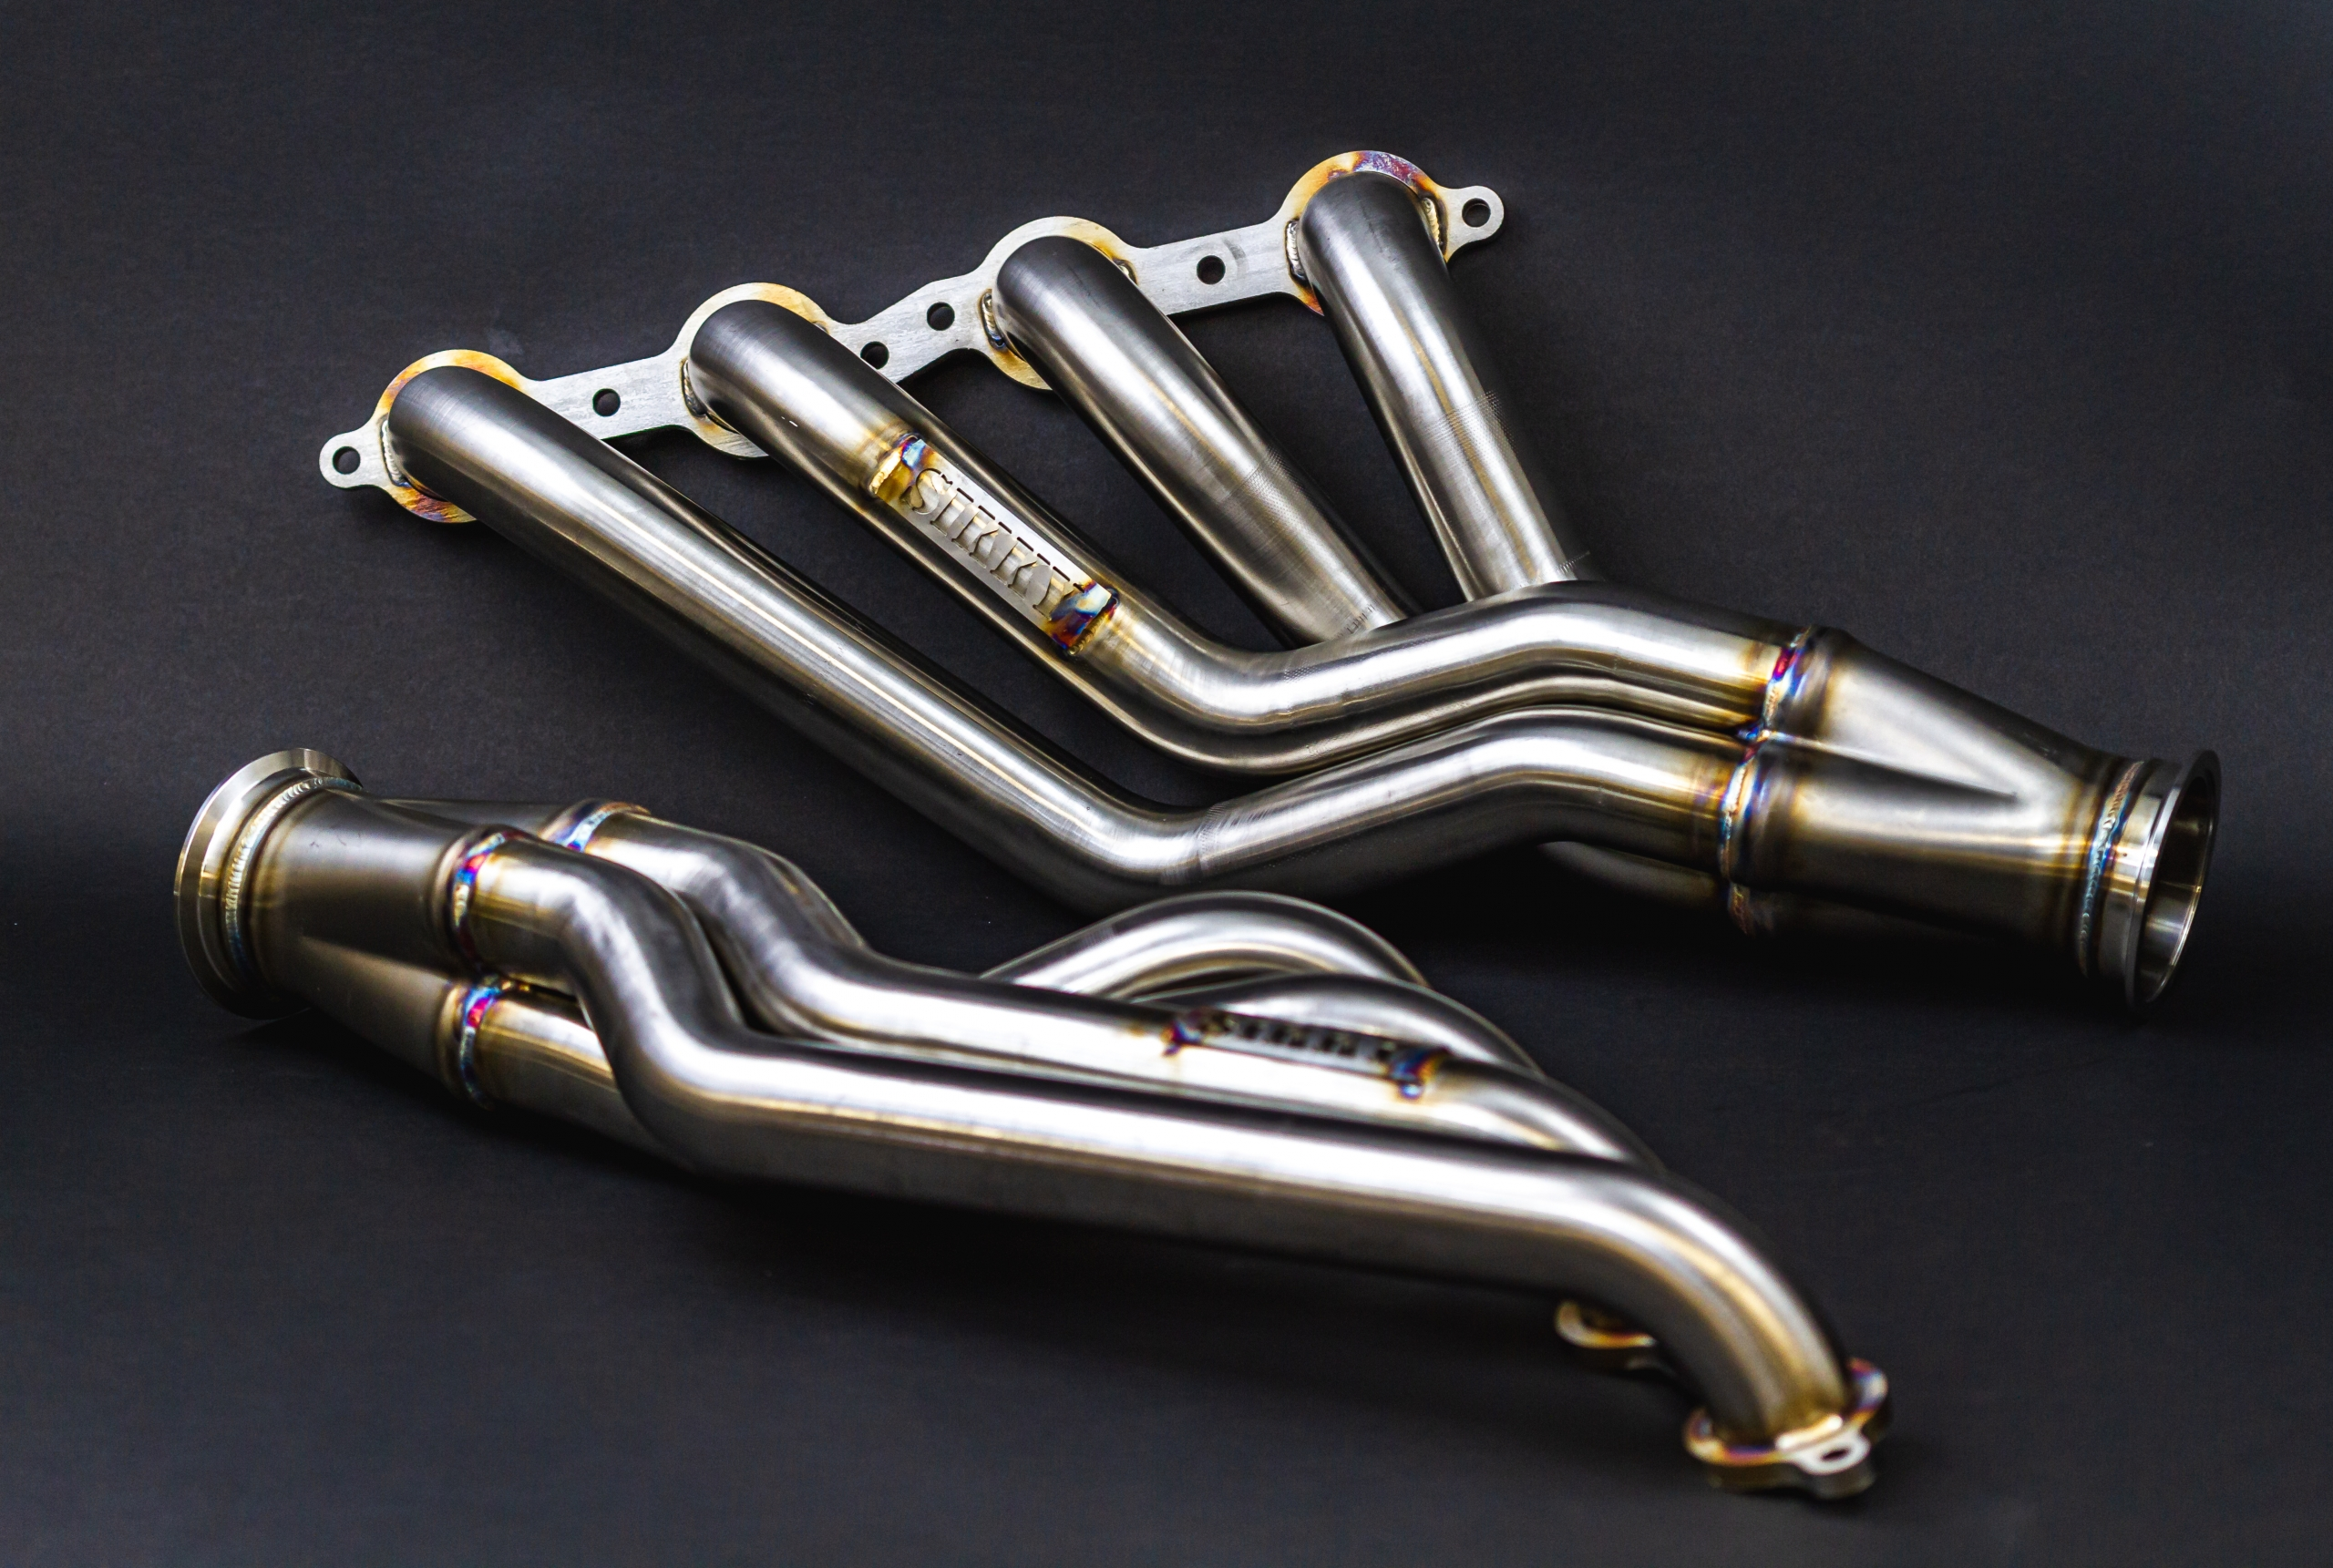 Sikky Nissan 350Z LS Swap Headers - Stainless Steel Pro Series